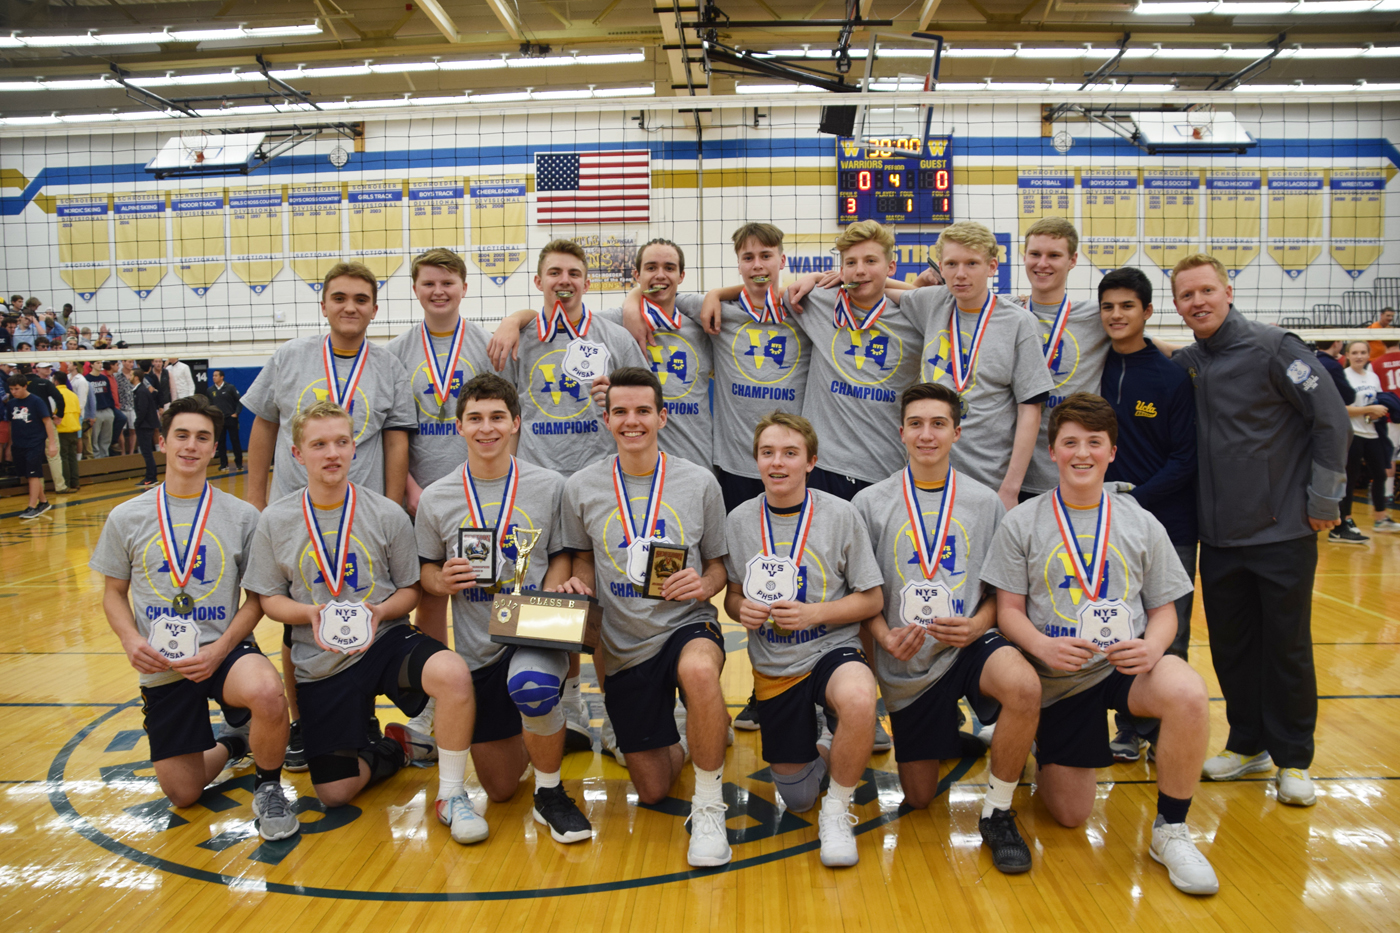 Spencerport Rangers Boys' Class B Section V champions. Provided photo